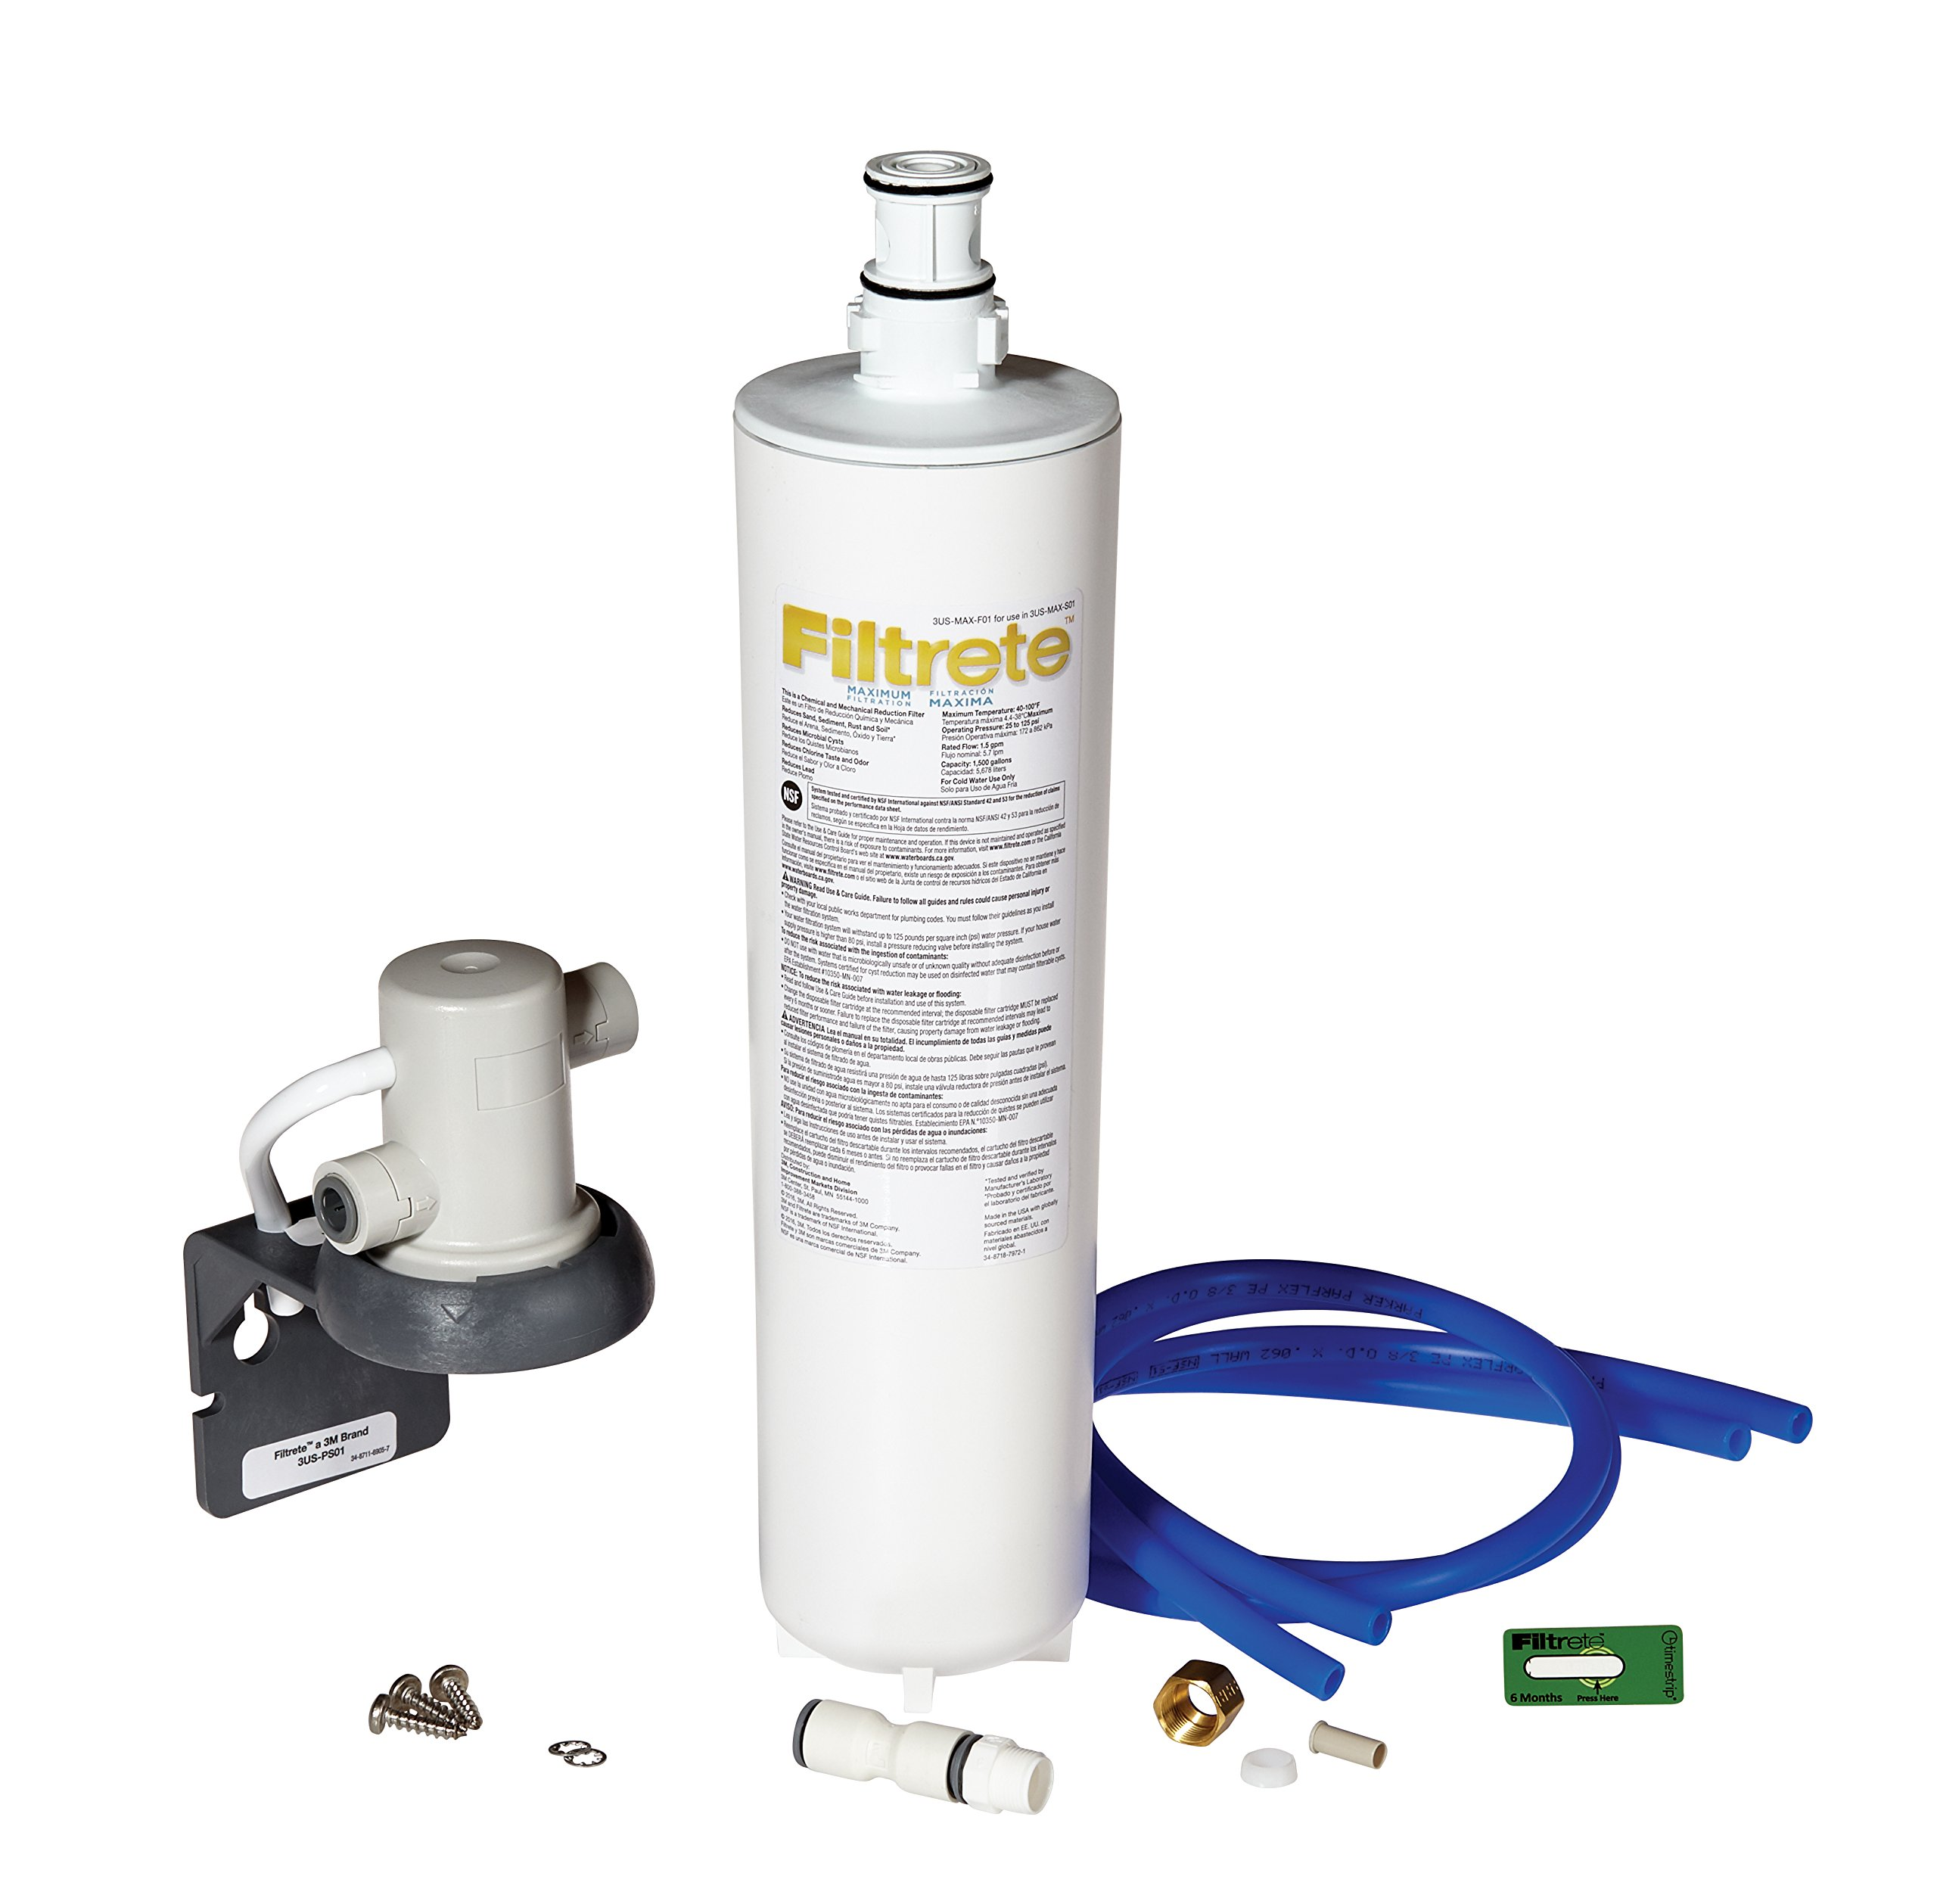 Filtrete Maximum Under Sink Water Filtration System, Easy to Install, Reduces 99% Lead + Much More (3US-MAX-S01) by Filtrete